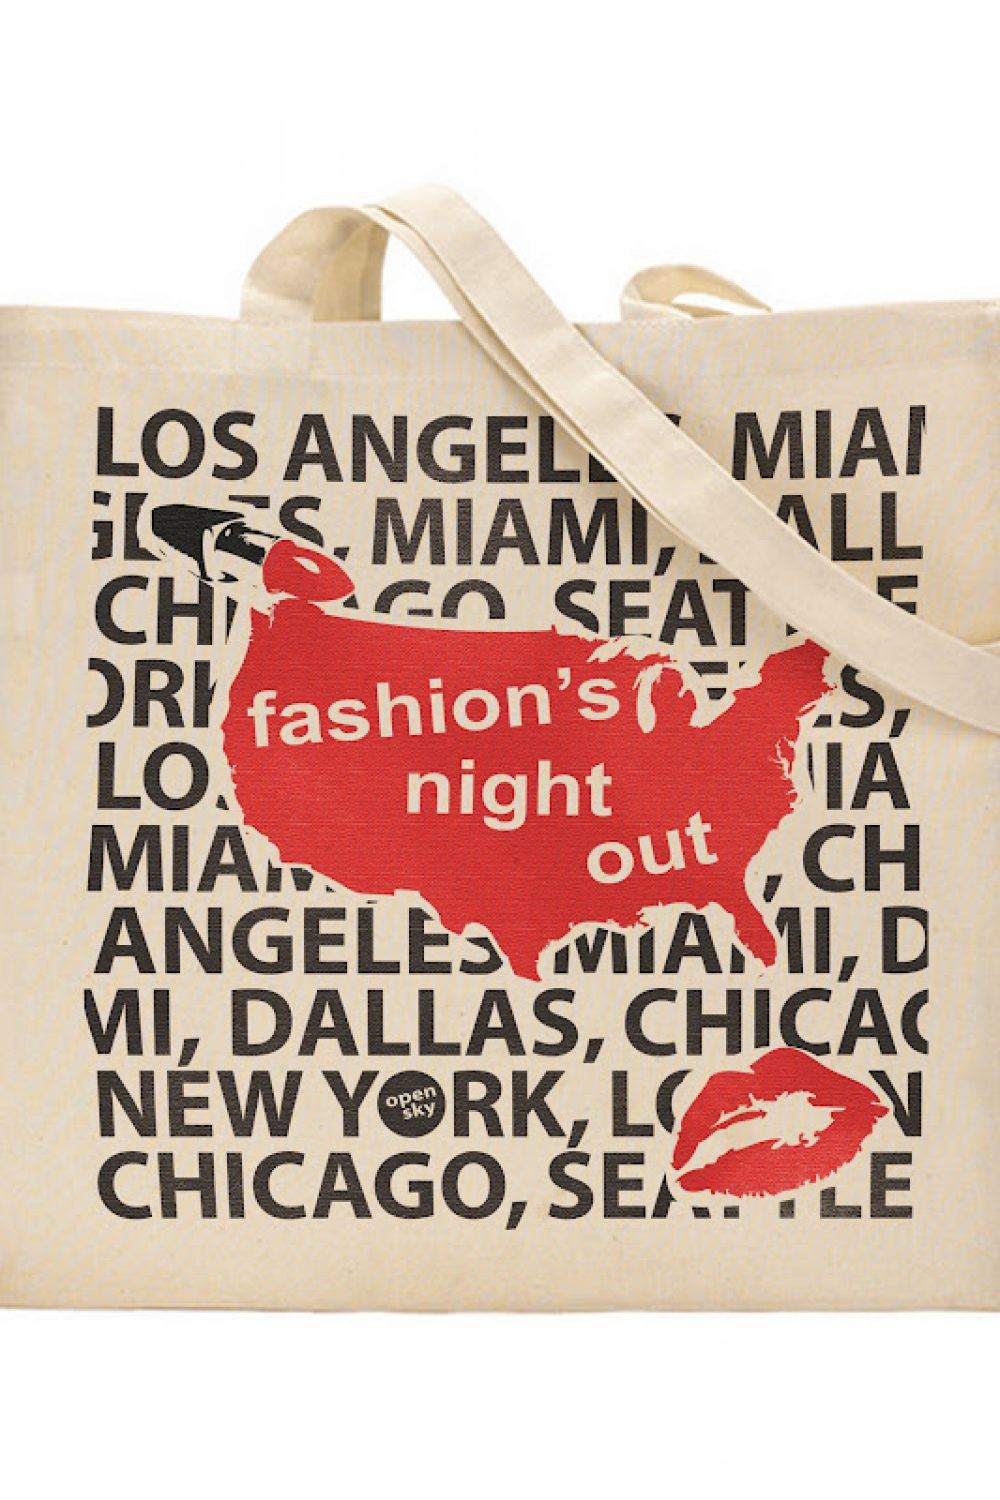 Win a Fashion's Night Out Tote!